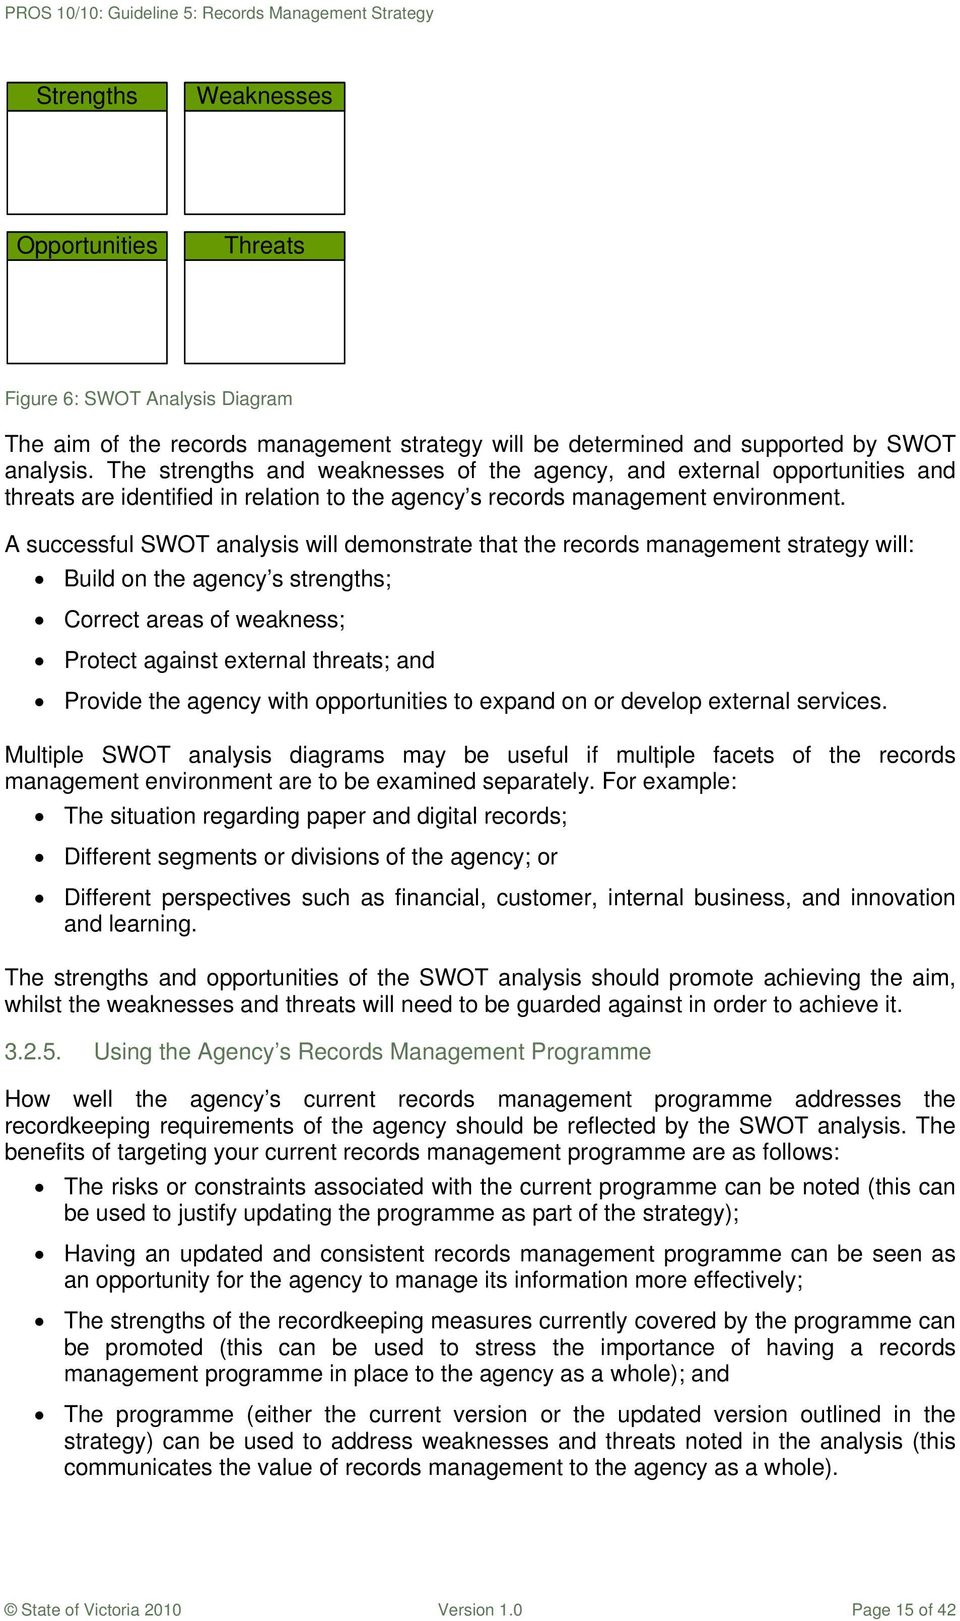 A successful SWOT analysis will demonstrate that the records management strategy will: Build on the agency s strengths; Correct areas of weakness; Protect against external threats; and Provide the